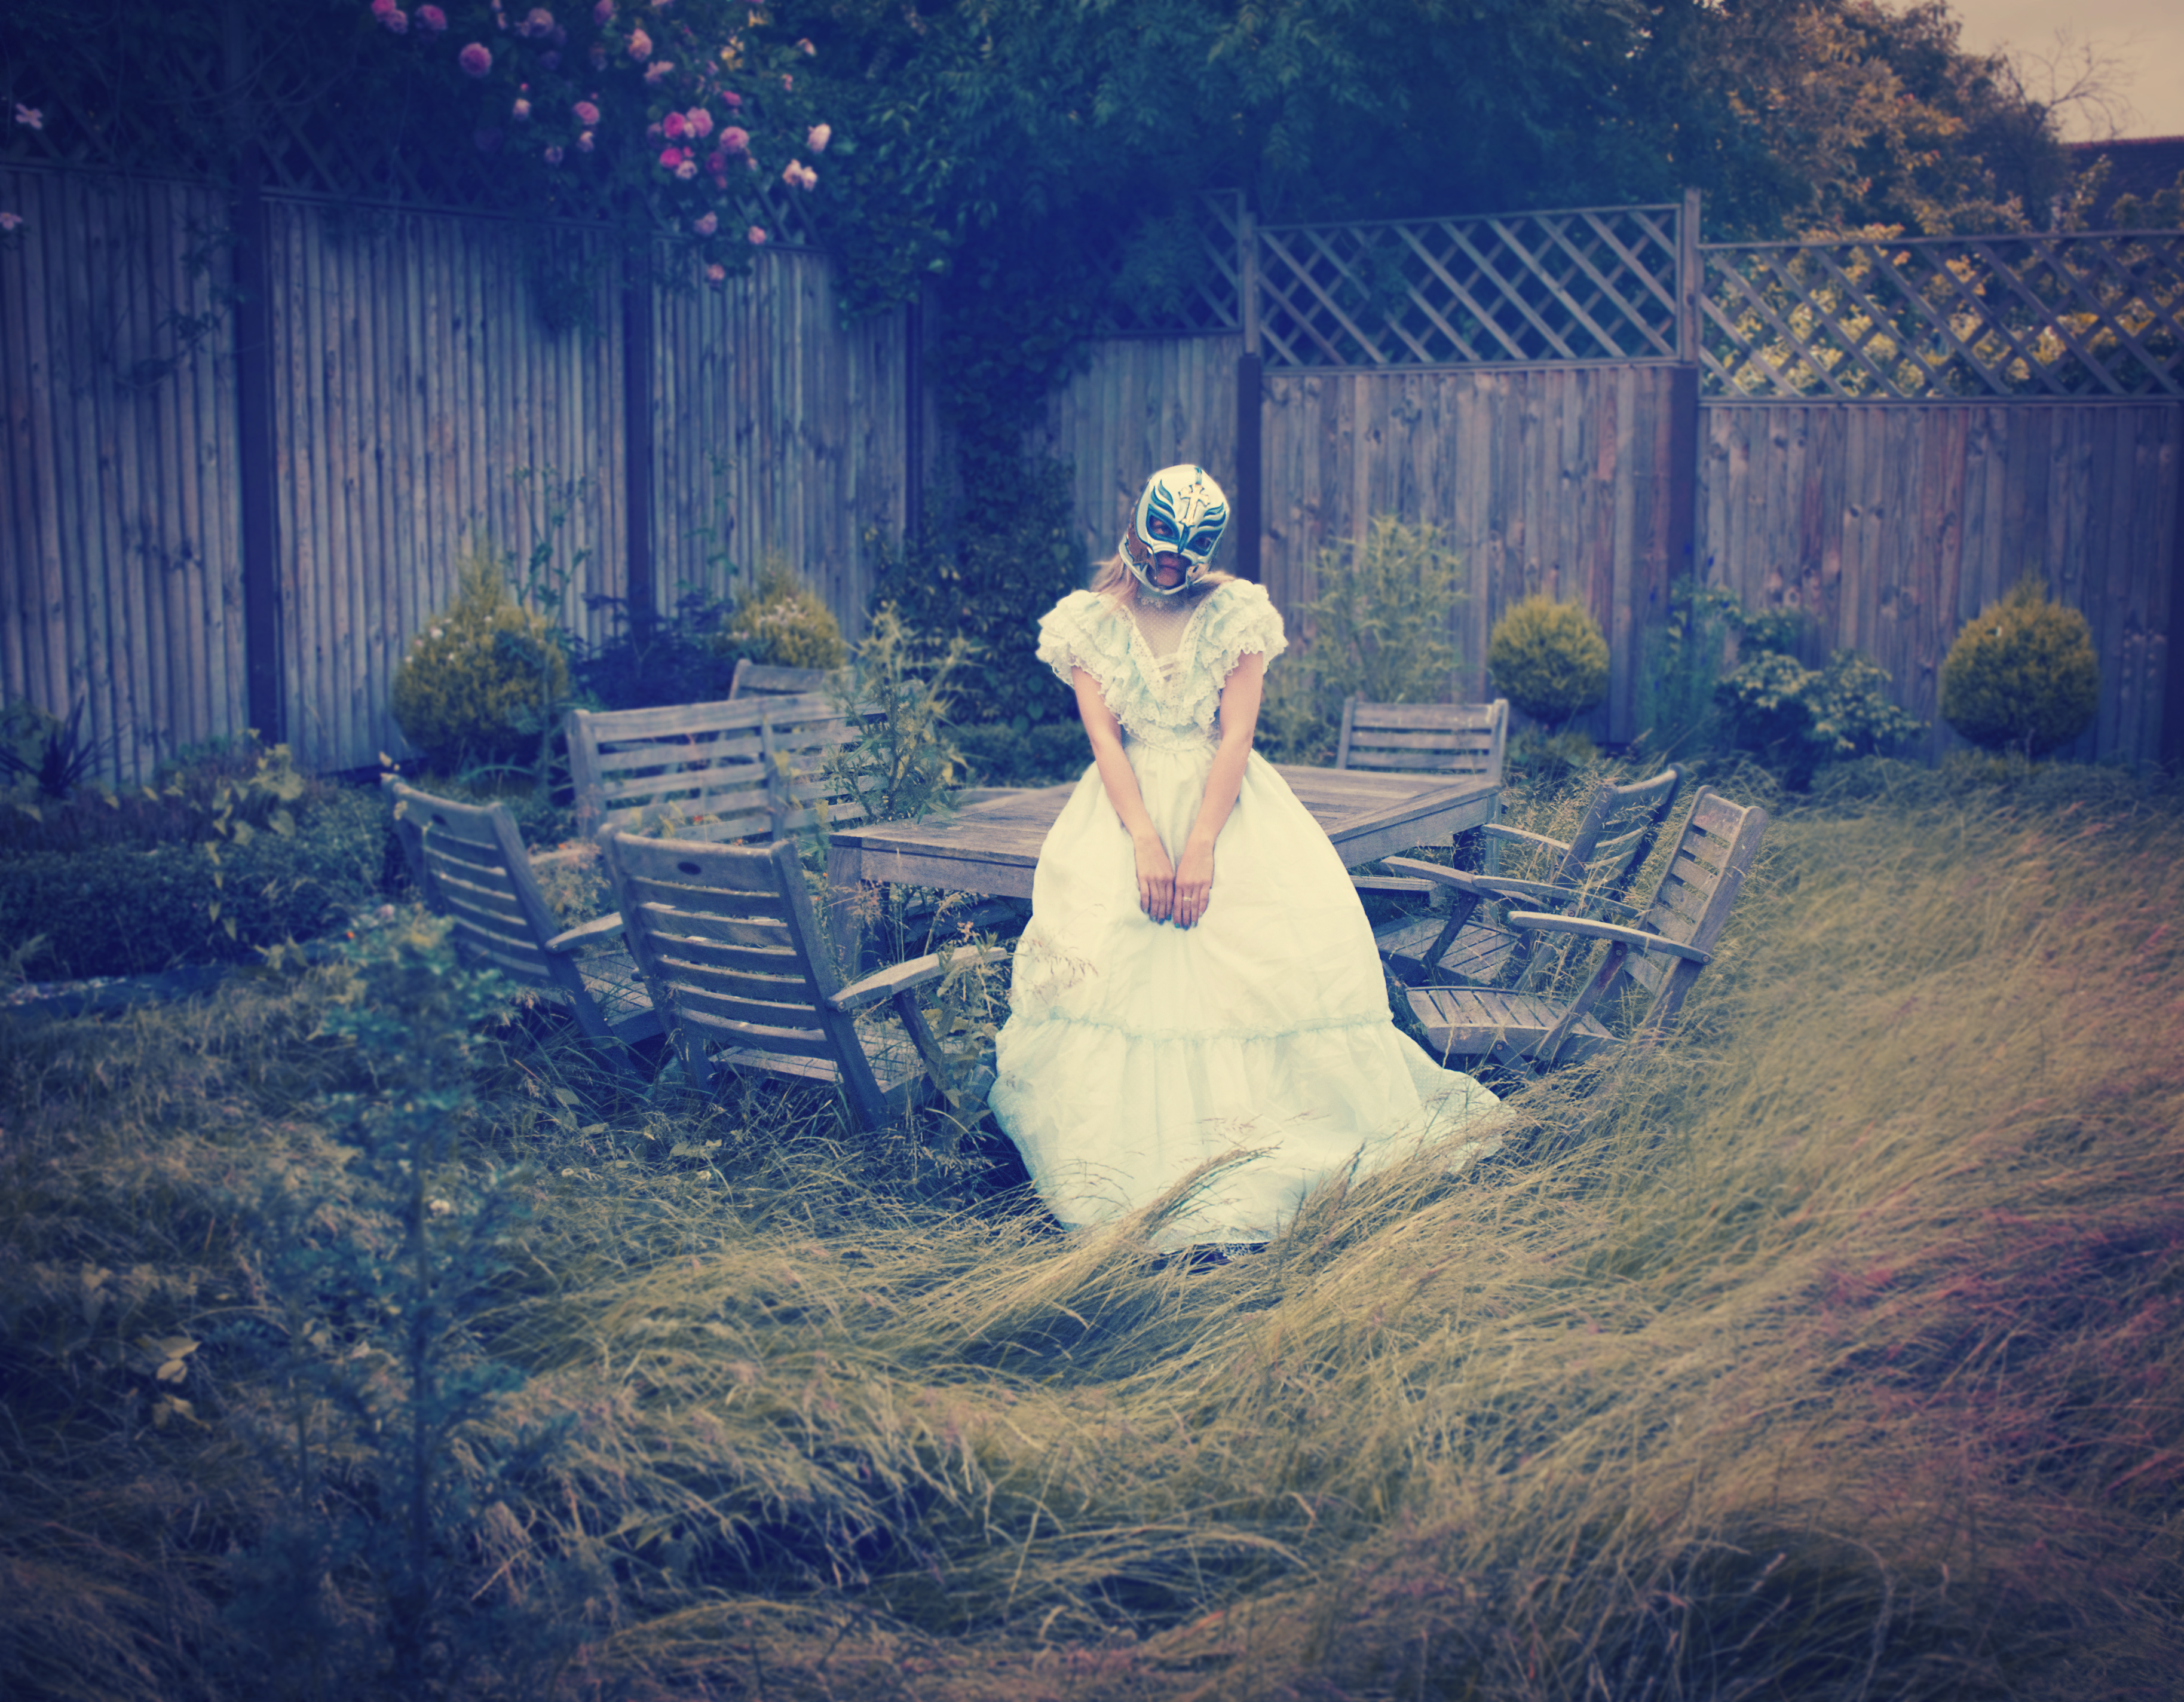 Sadness Never Loneliness: a self-portrait of the artist as a desperate bride, addressing the cultural expectation that every young woman desires marriage. Image: Uldus Bakhtiozina